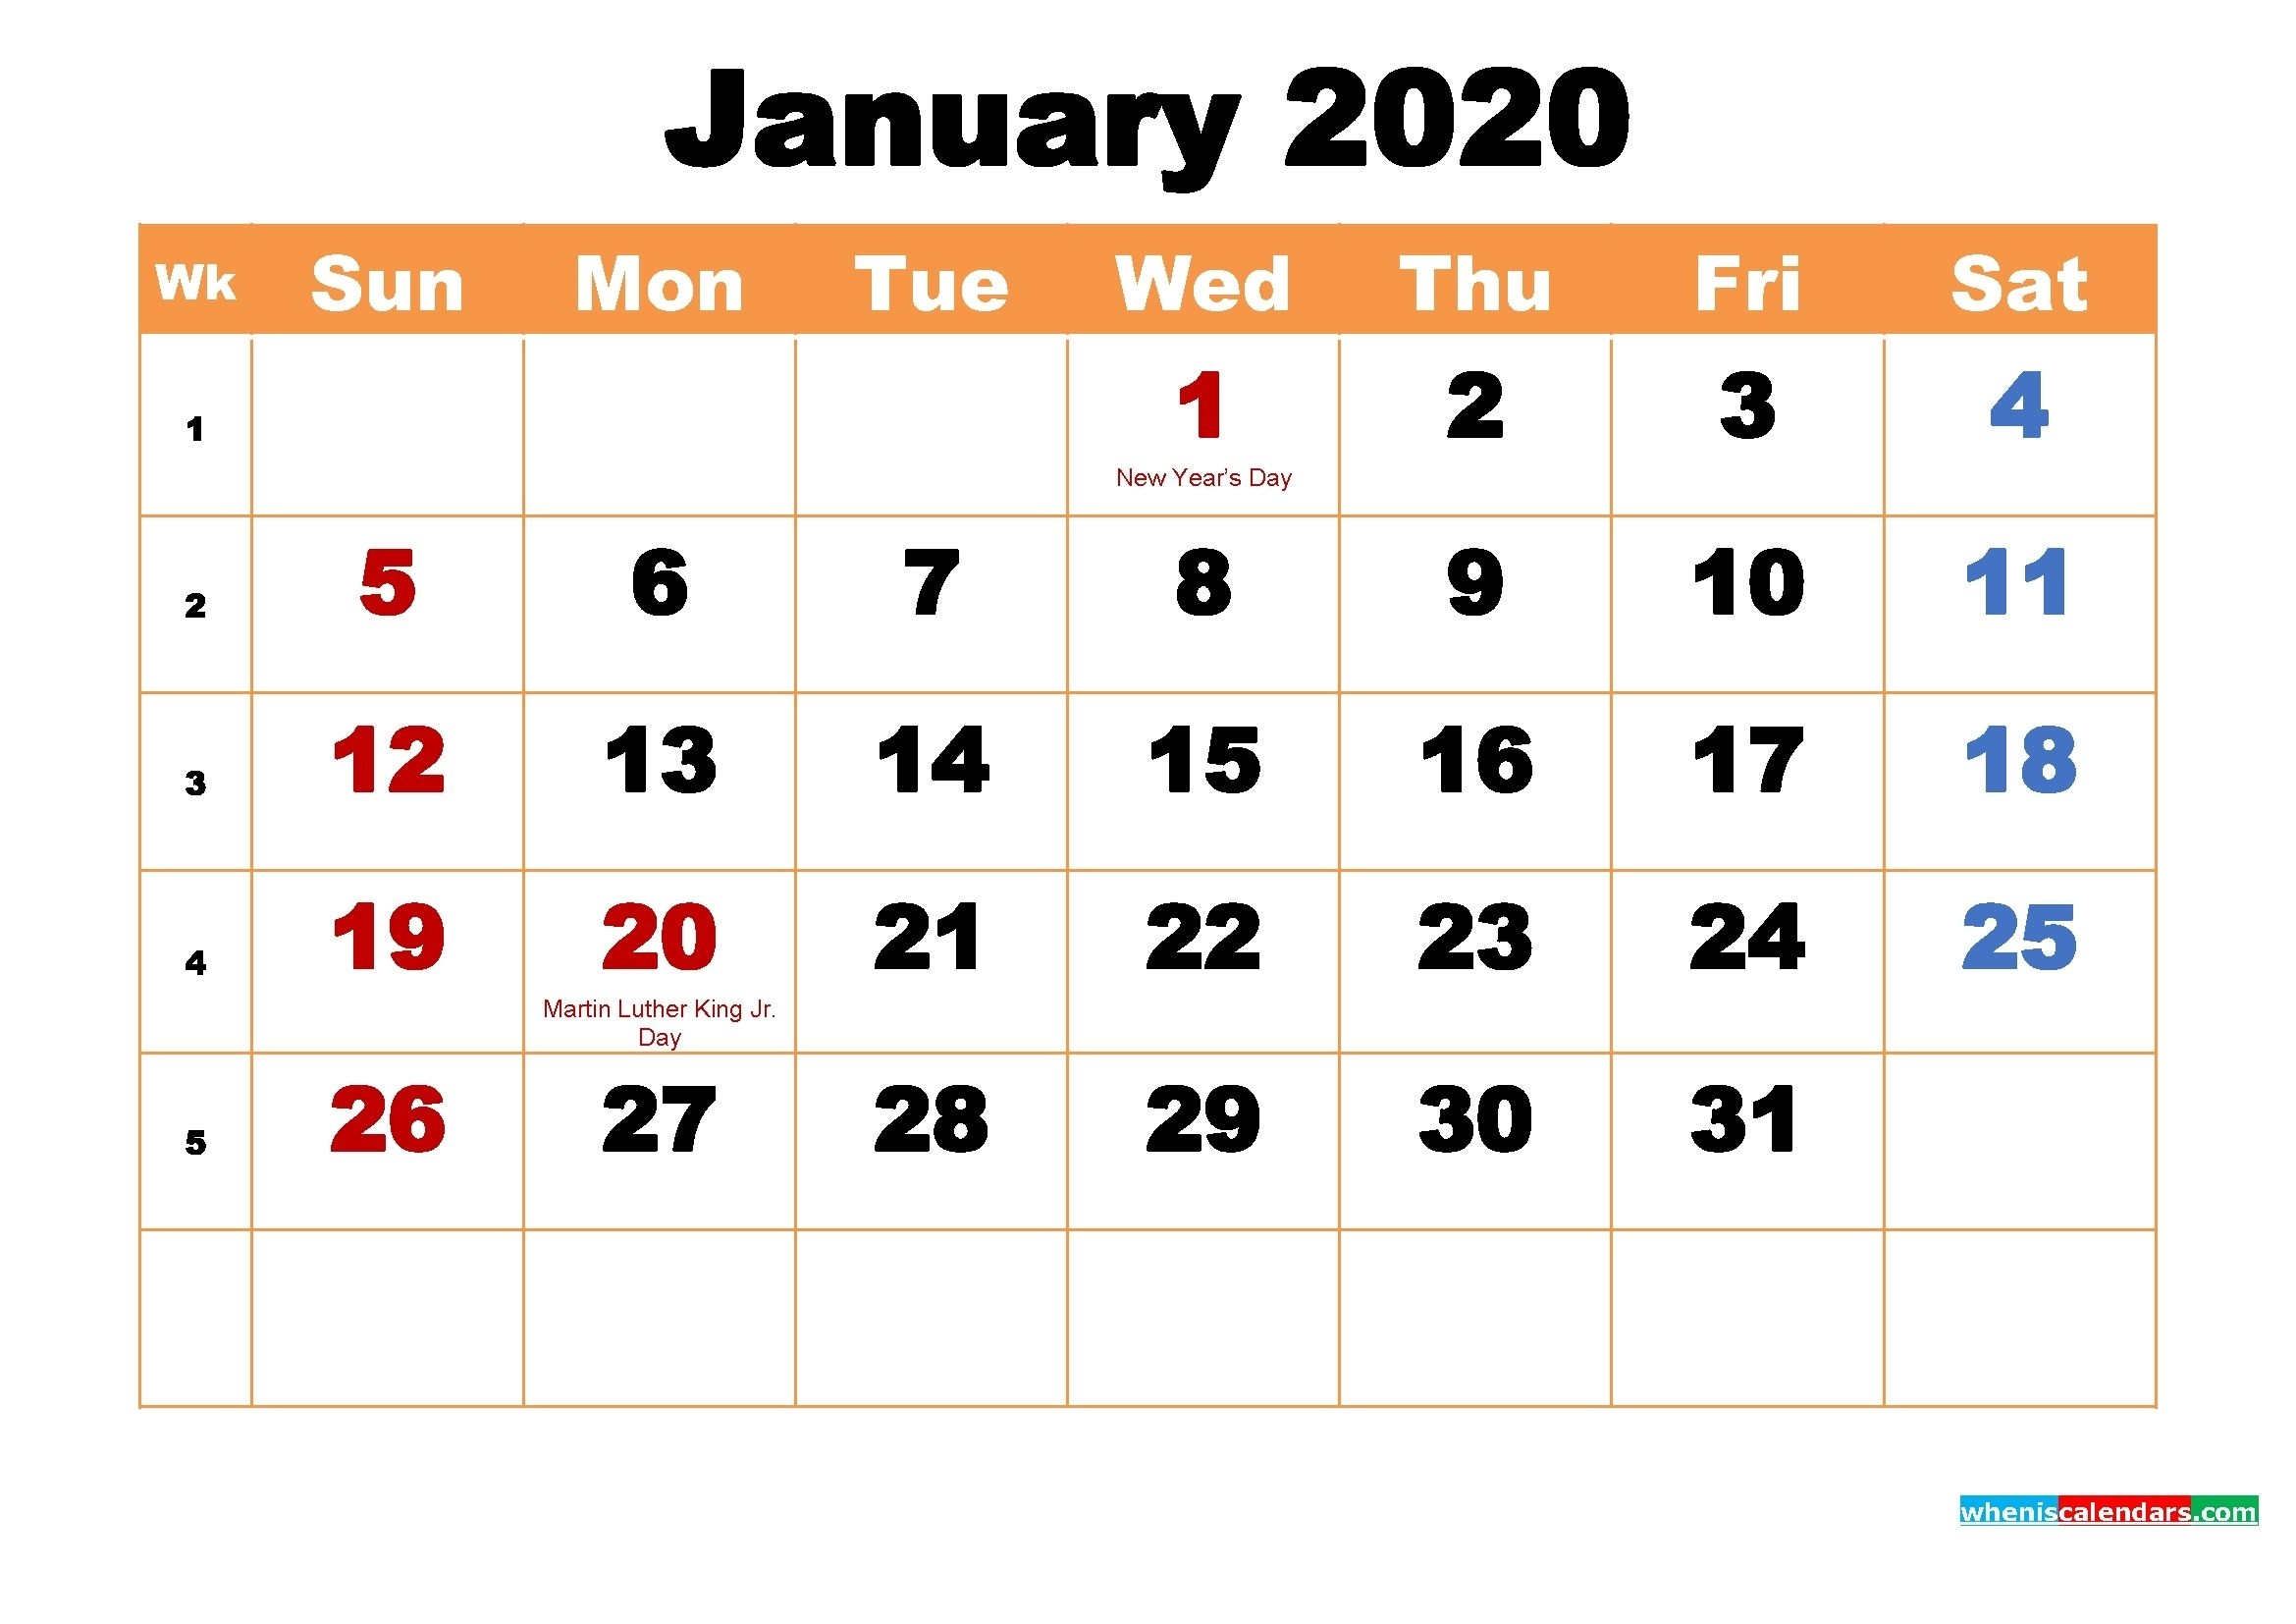 January 2020 Calendar Wallpaper High Resolution | Free In